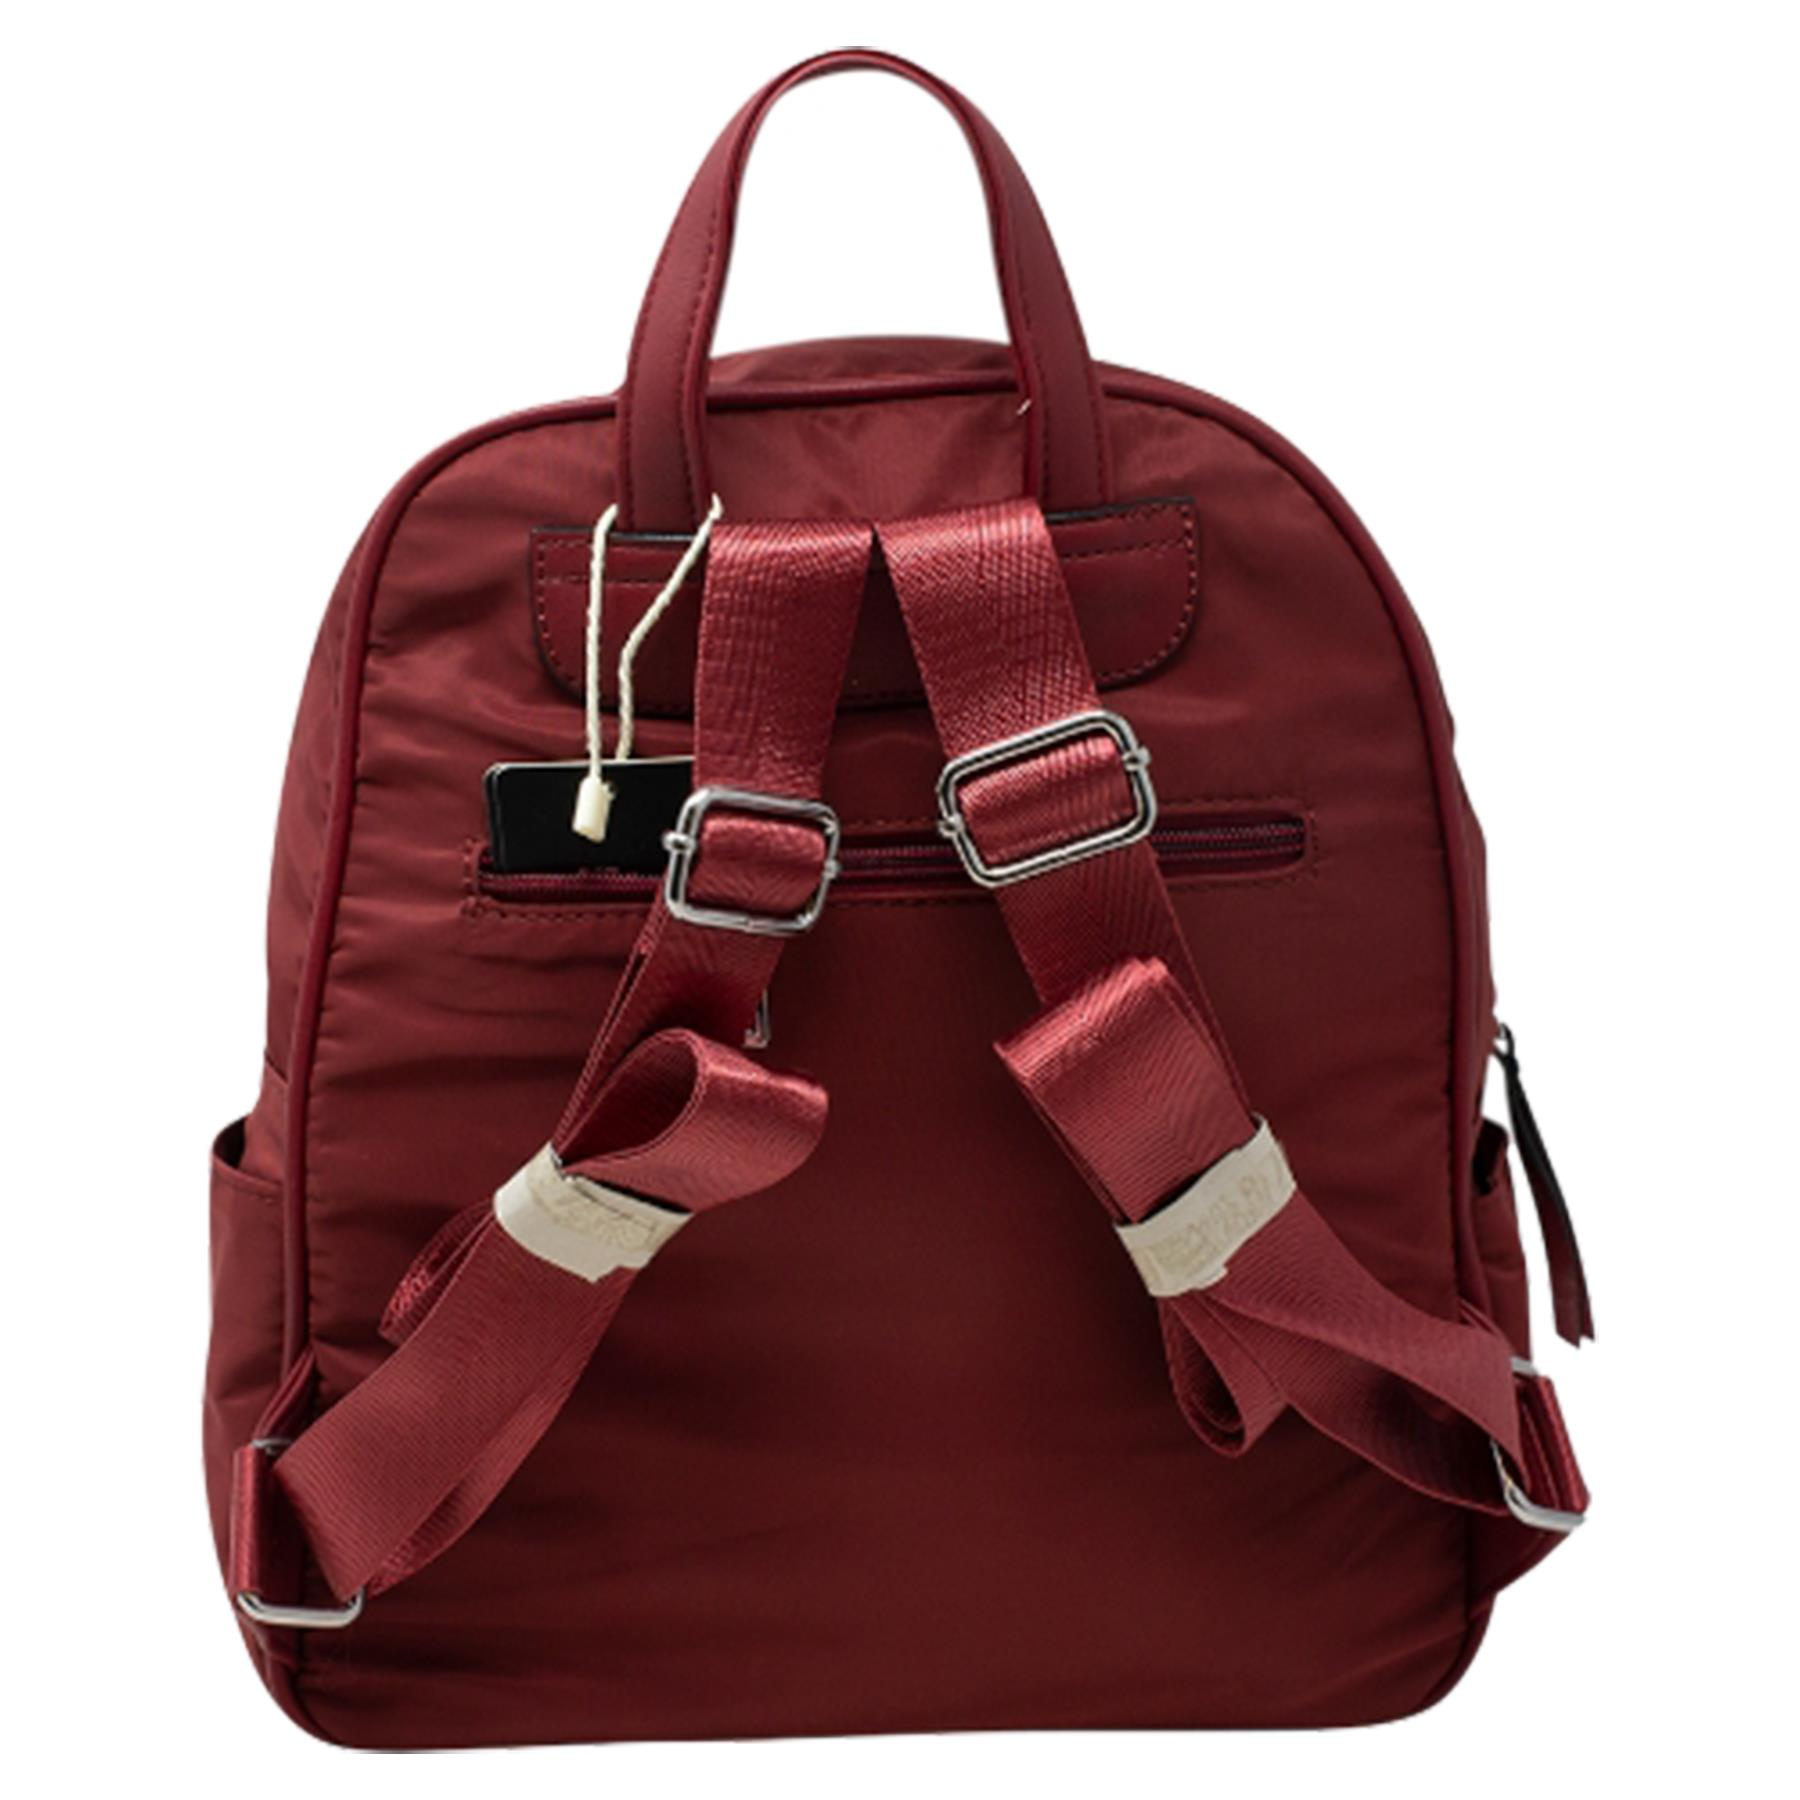 New-Unisex-Plain-Nylon-Showerproof-School-College-Backpack-Rucksack thumbnail 23